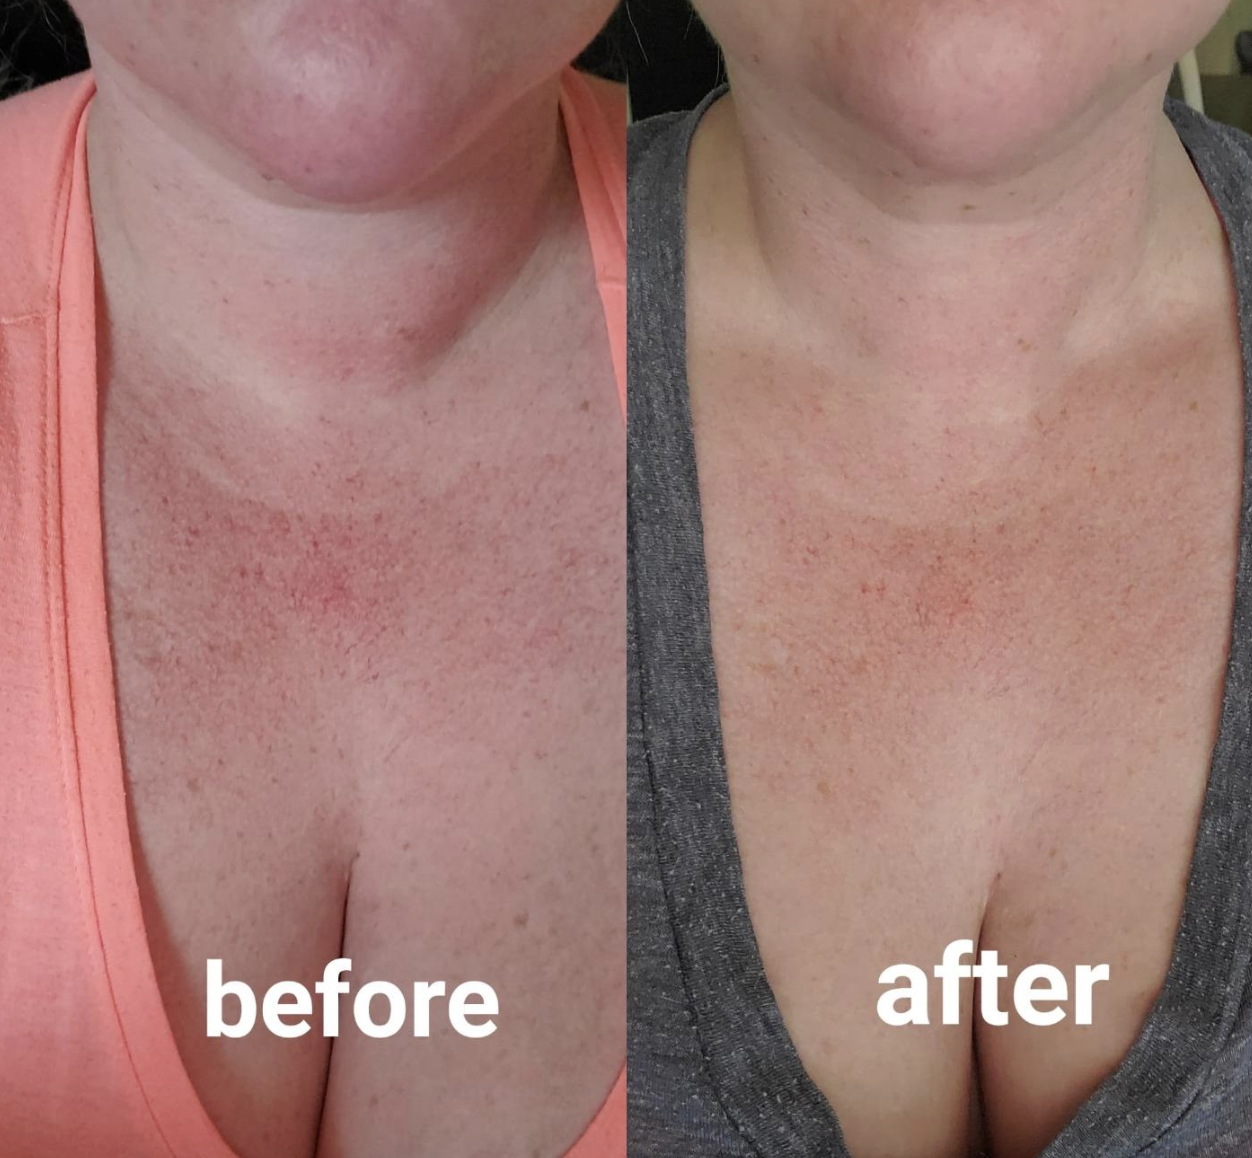 On the left, a reviewer's chest is red and splotchy from a psoriasis outbreak. On the right, the reviewer's chest is visibly calmer and less red